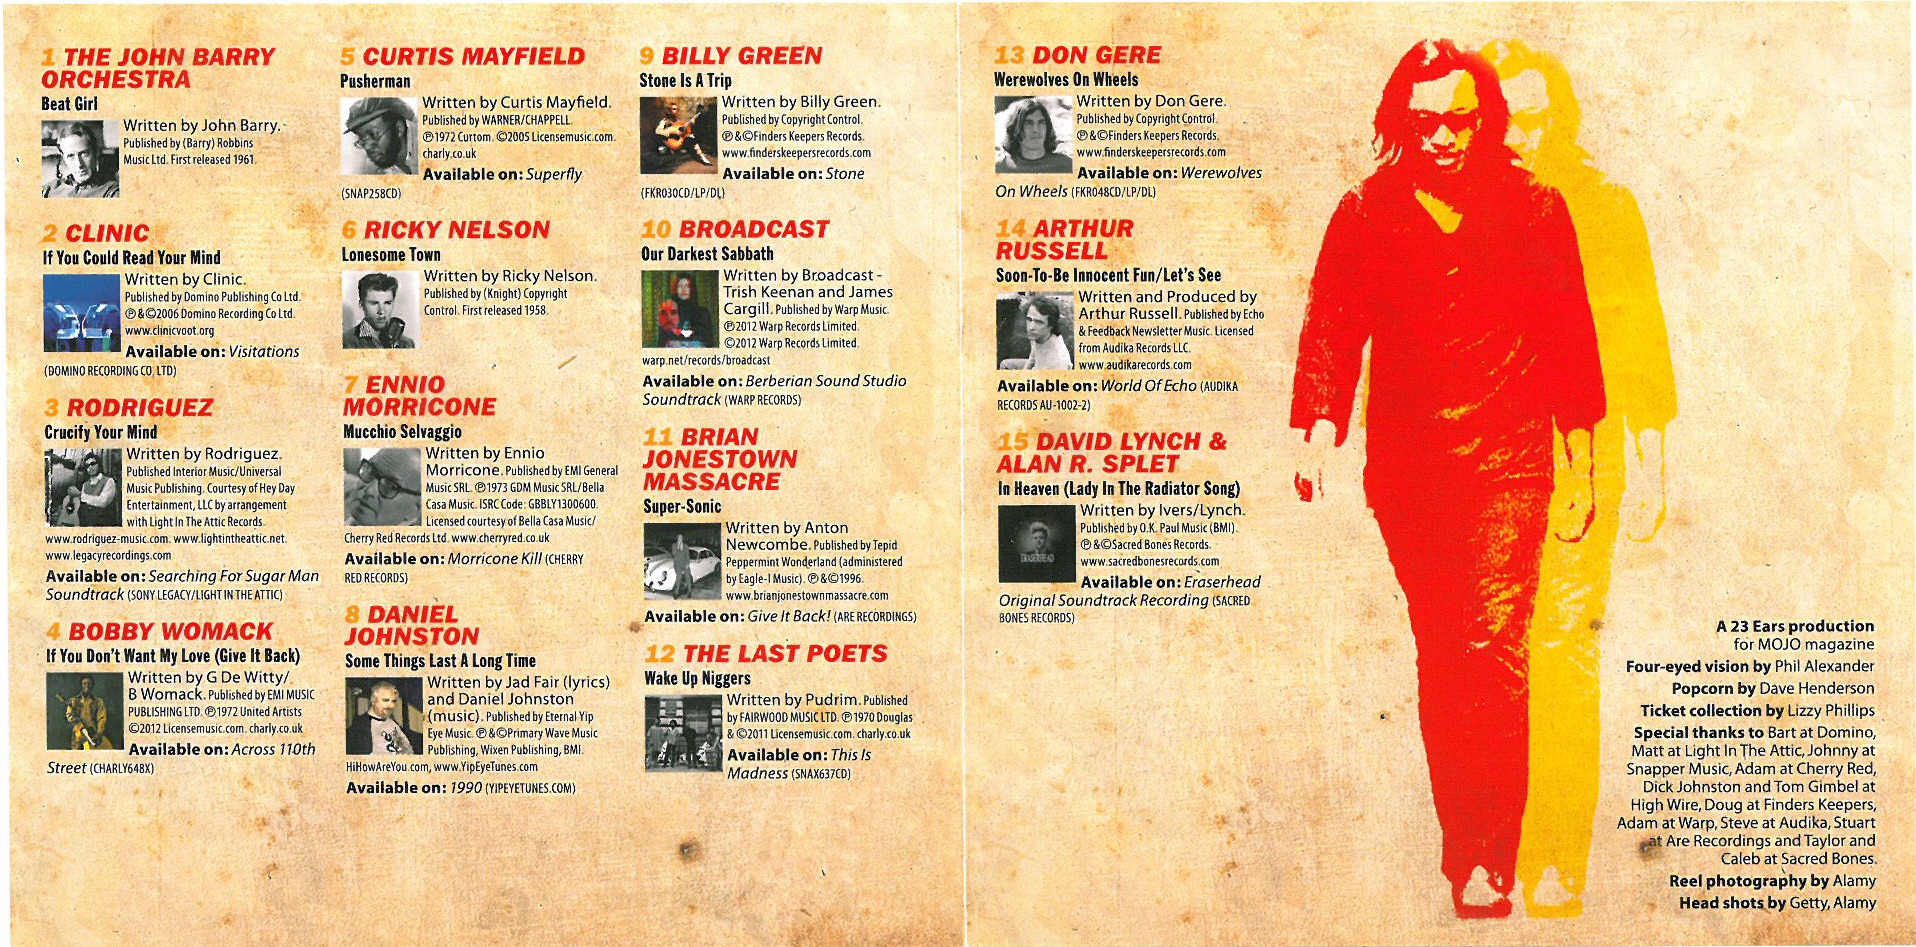 Mojo April 2013 - CD Inside Cover